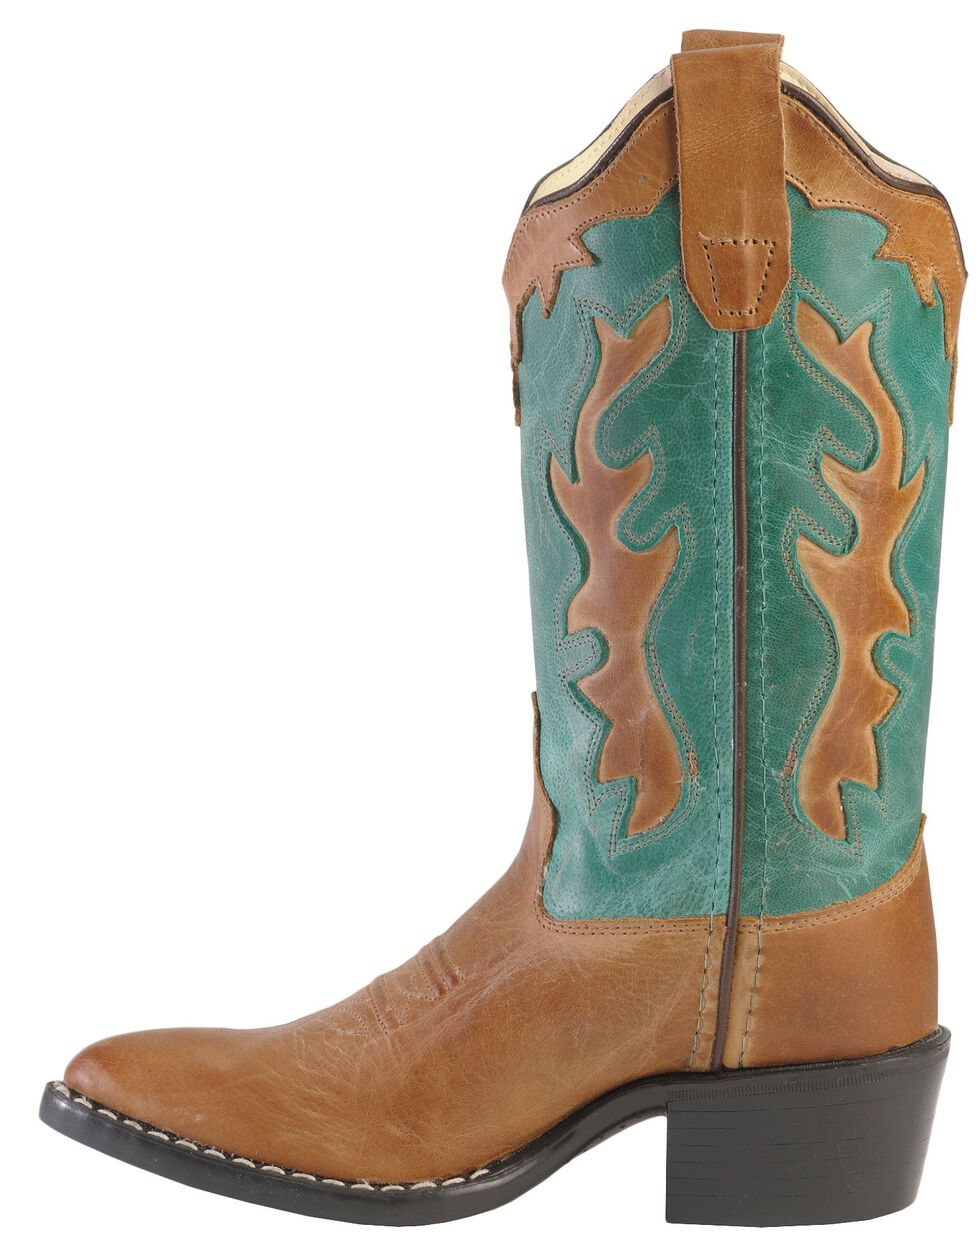 Old West Boys' Western Inlay Cowboy Boots - Pointed Toe, Tan, hi-res